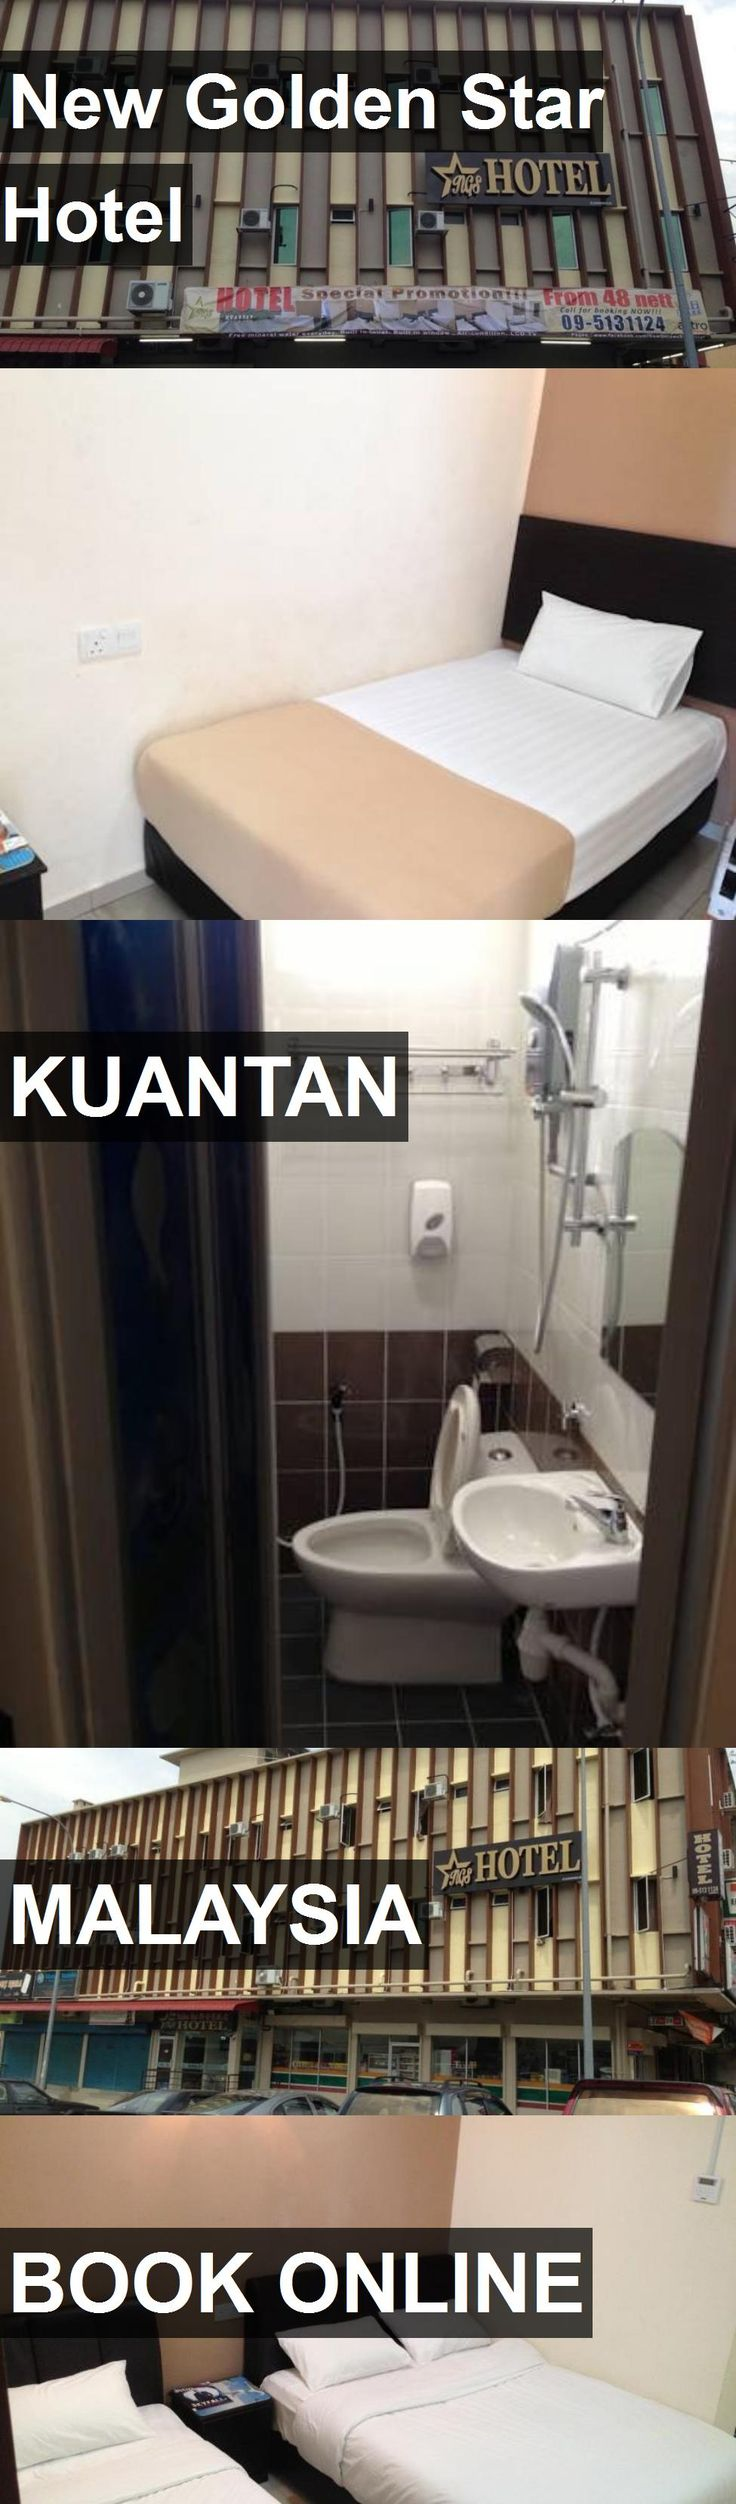 New Golden Star Hotel in Kuantan, Malaysia. For more information, photos, reviews and best prices please follow the link. #Malaysia #Kuantan #travel #vacation #hotel